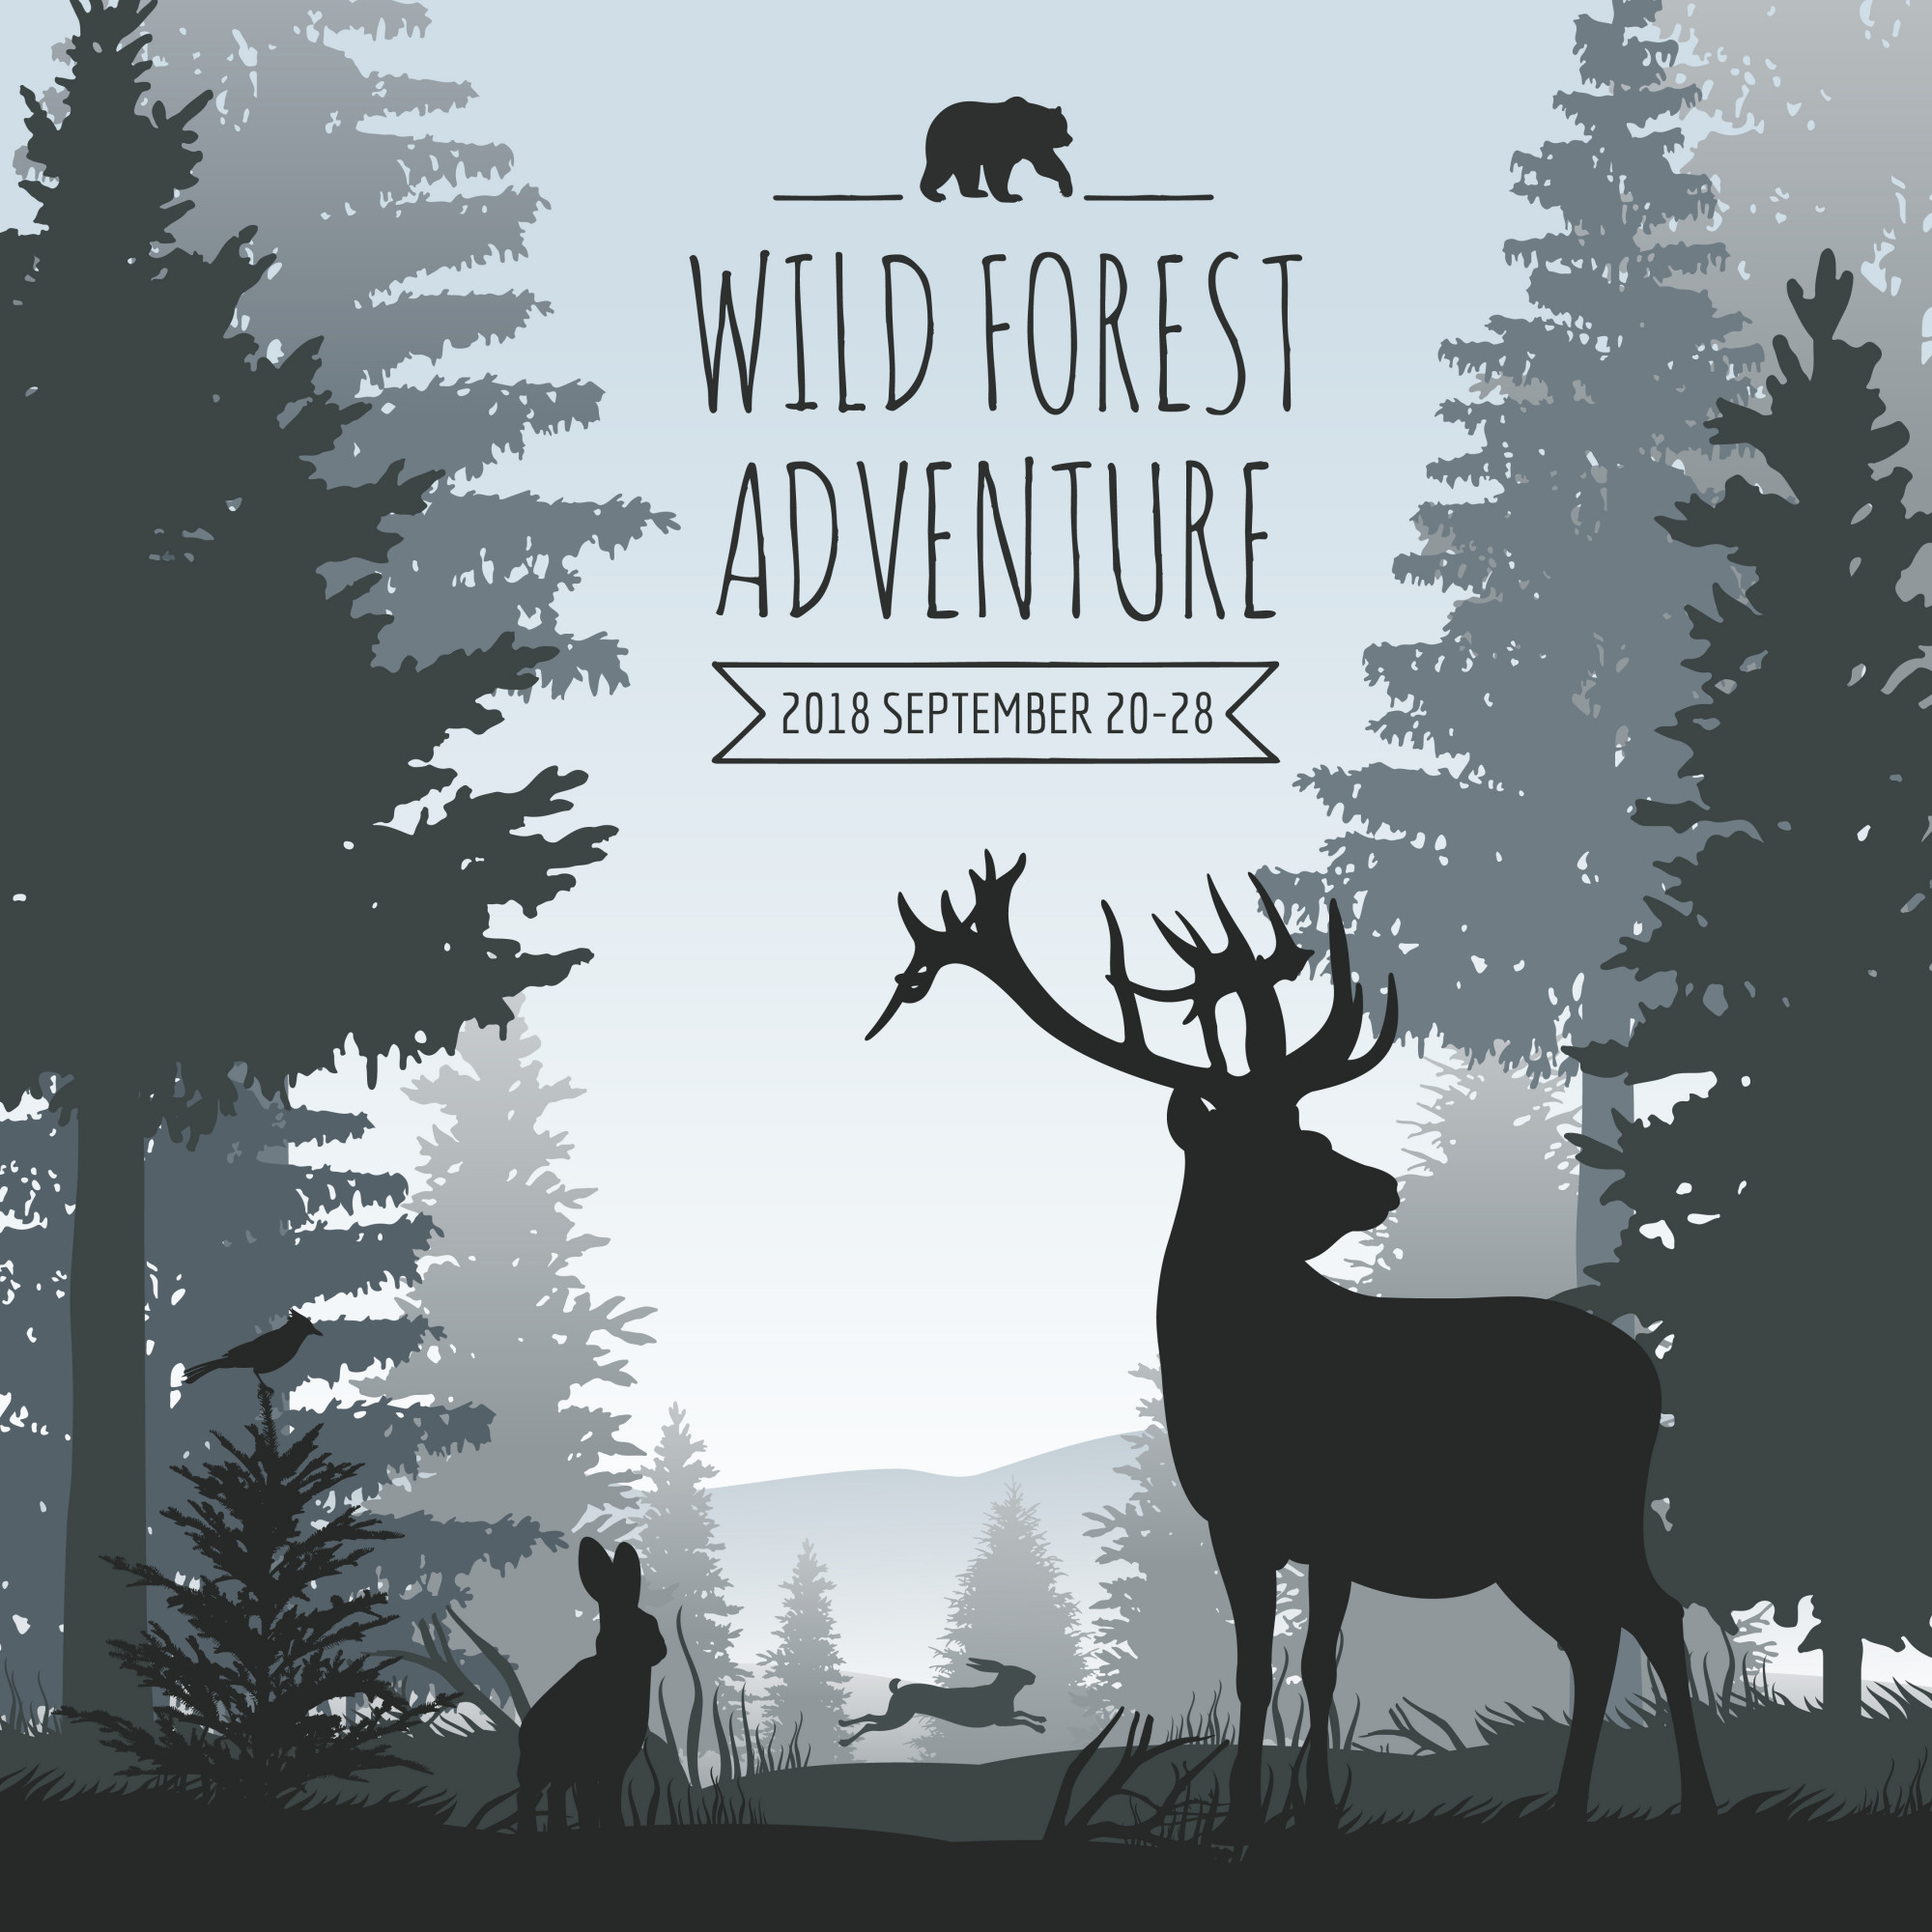 Wildlife foggy coniferous forest vector background with pines trees and animals silhouettes